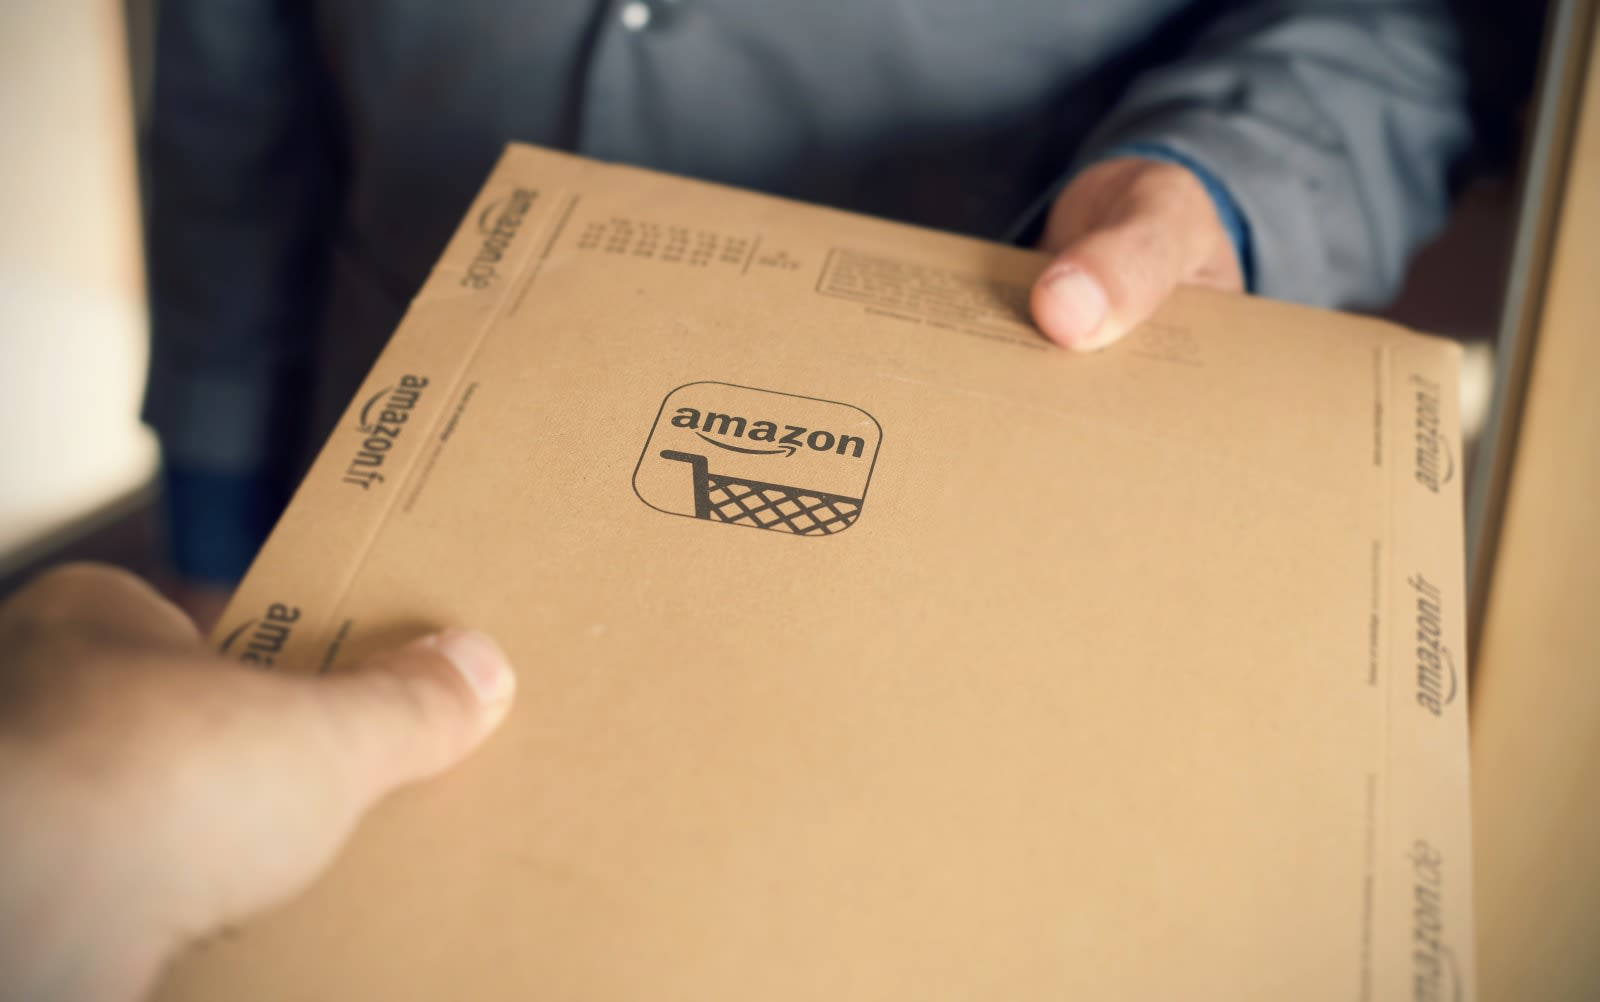 Amazon will no longer use drivers' tips to cover their base pay